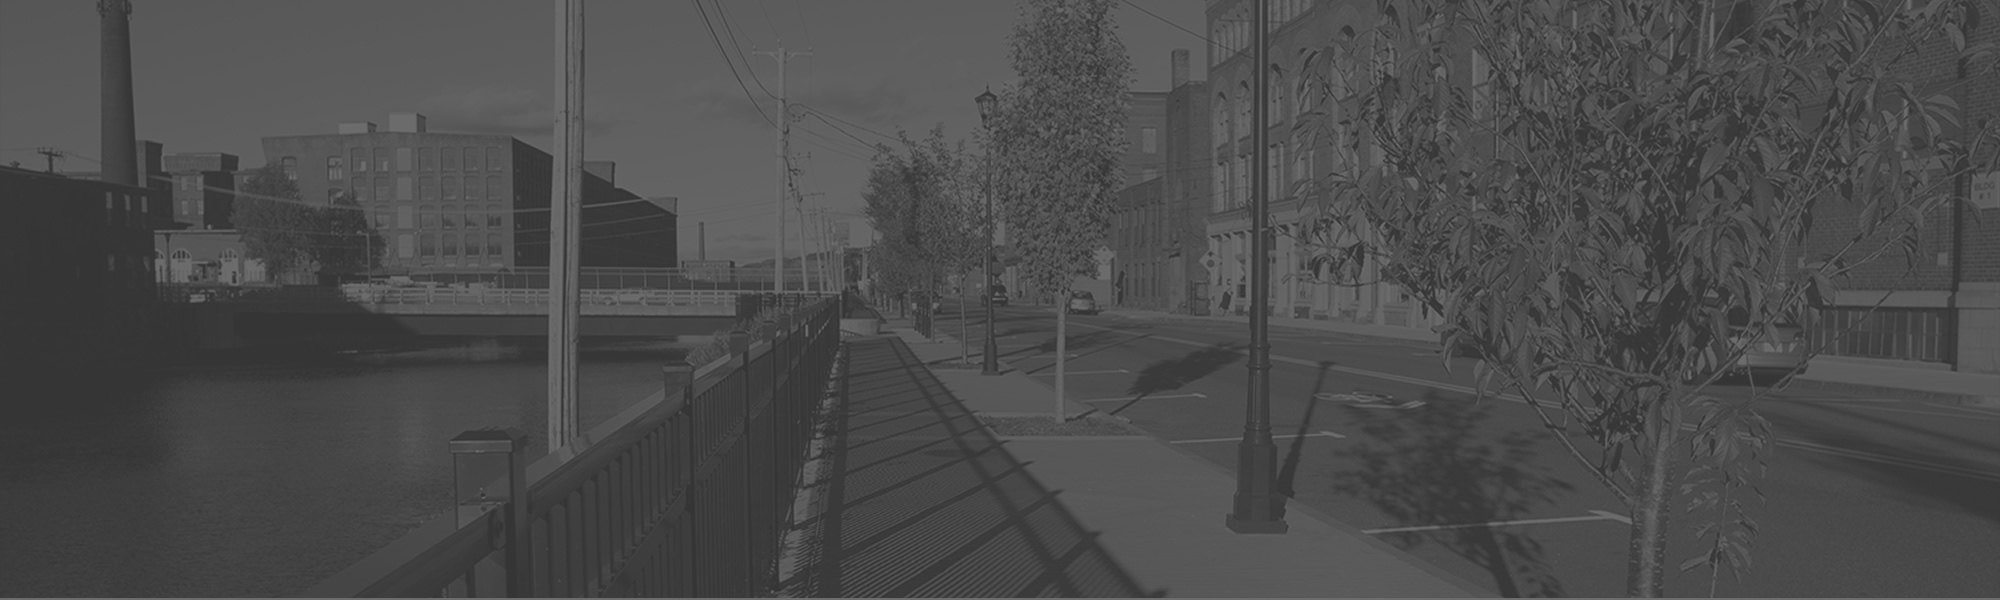 cdeVision is located at the STEAM Building on Race Street - the most exciting epicenter of Holyoke's revitalization - and part of the Canal District.